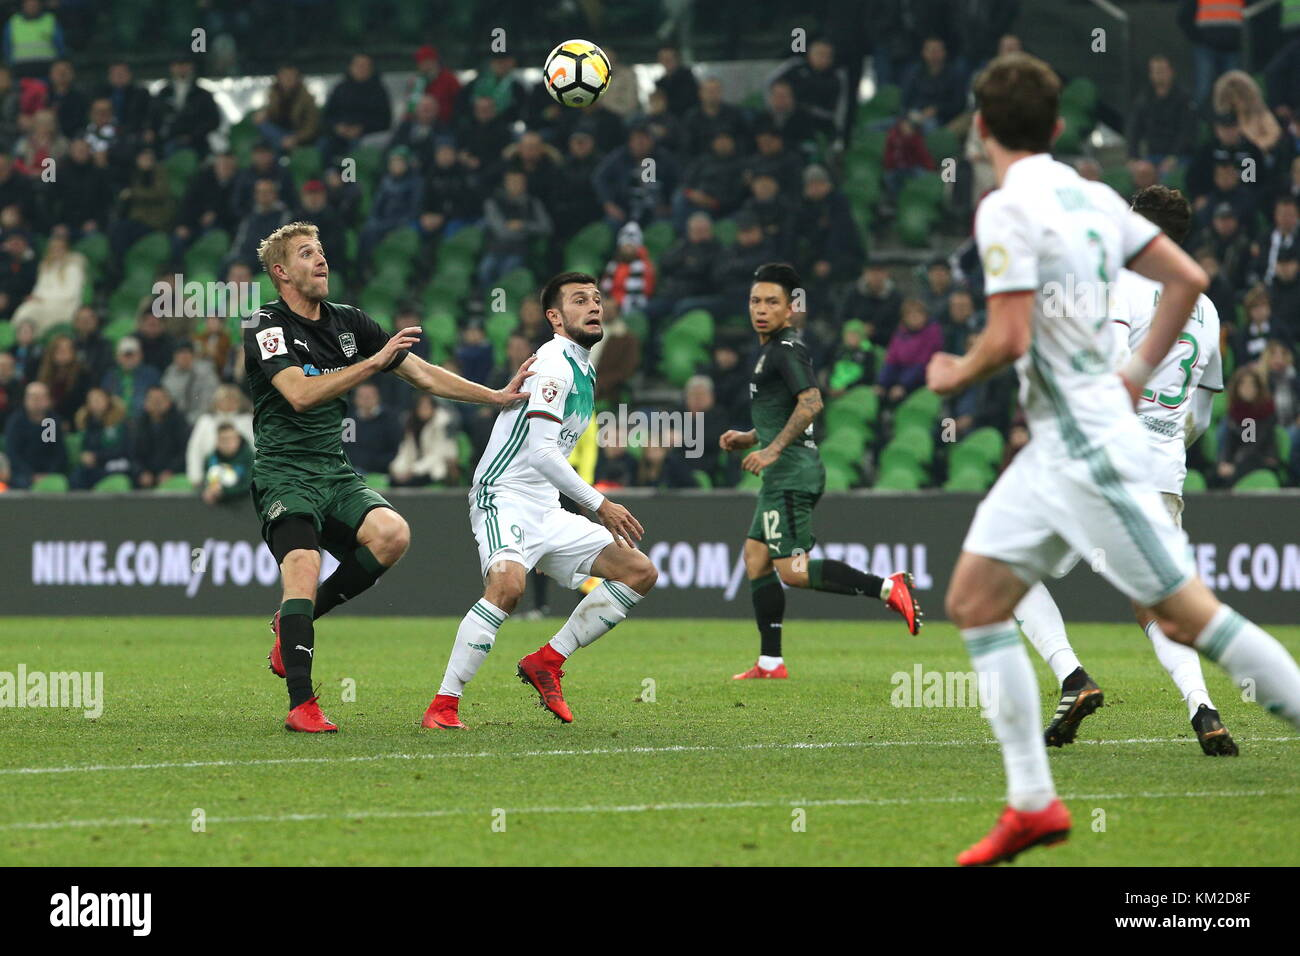 Krasnodar Russia December 3 2017 Fc Krasnodar S Yuri Gazinsky Stock Photo Alamy